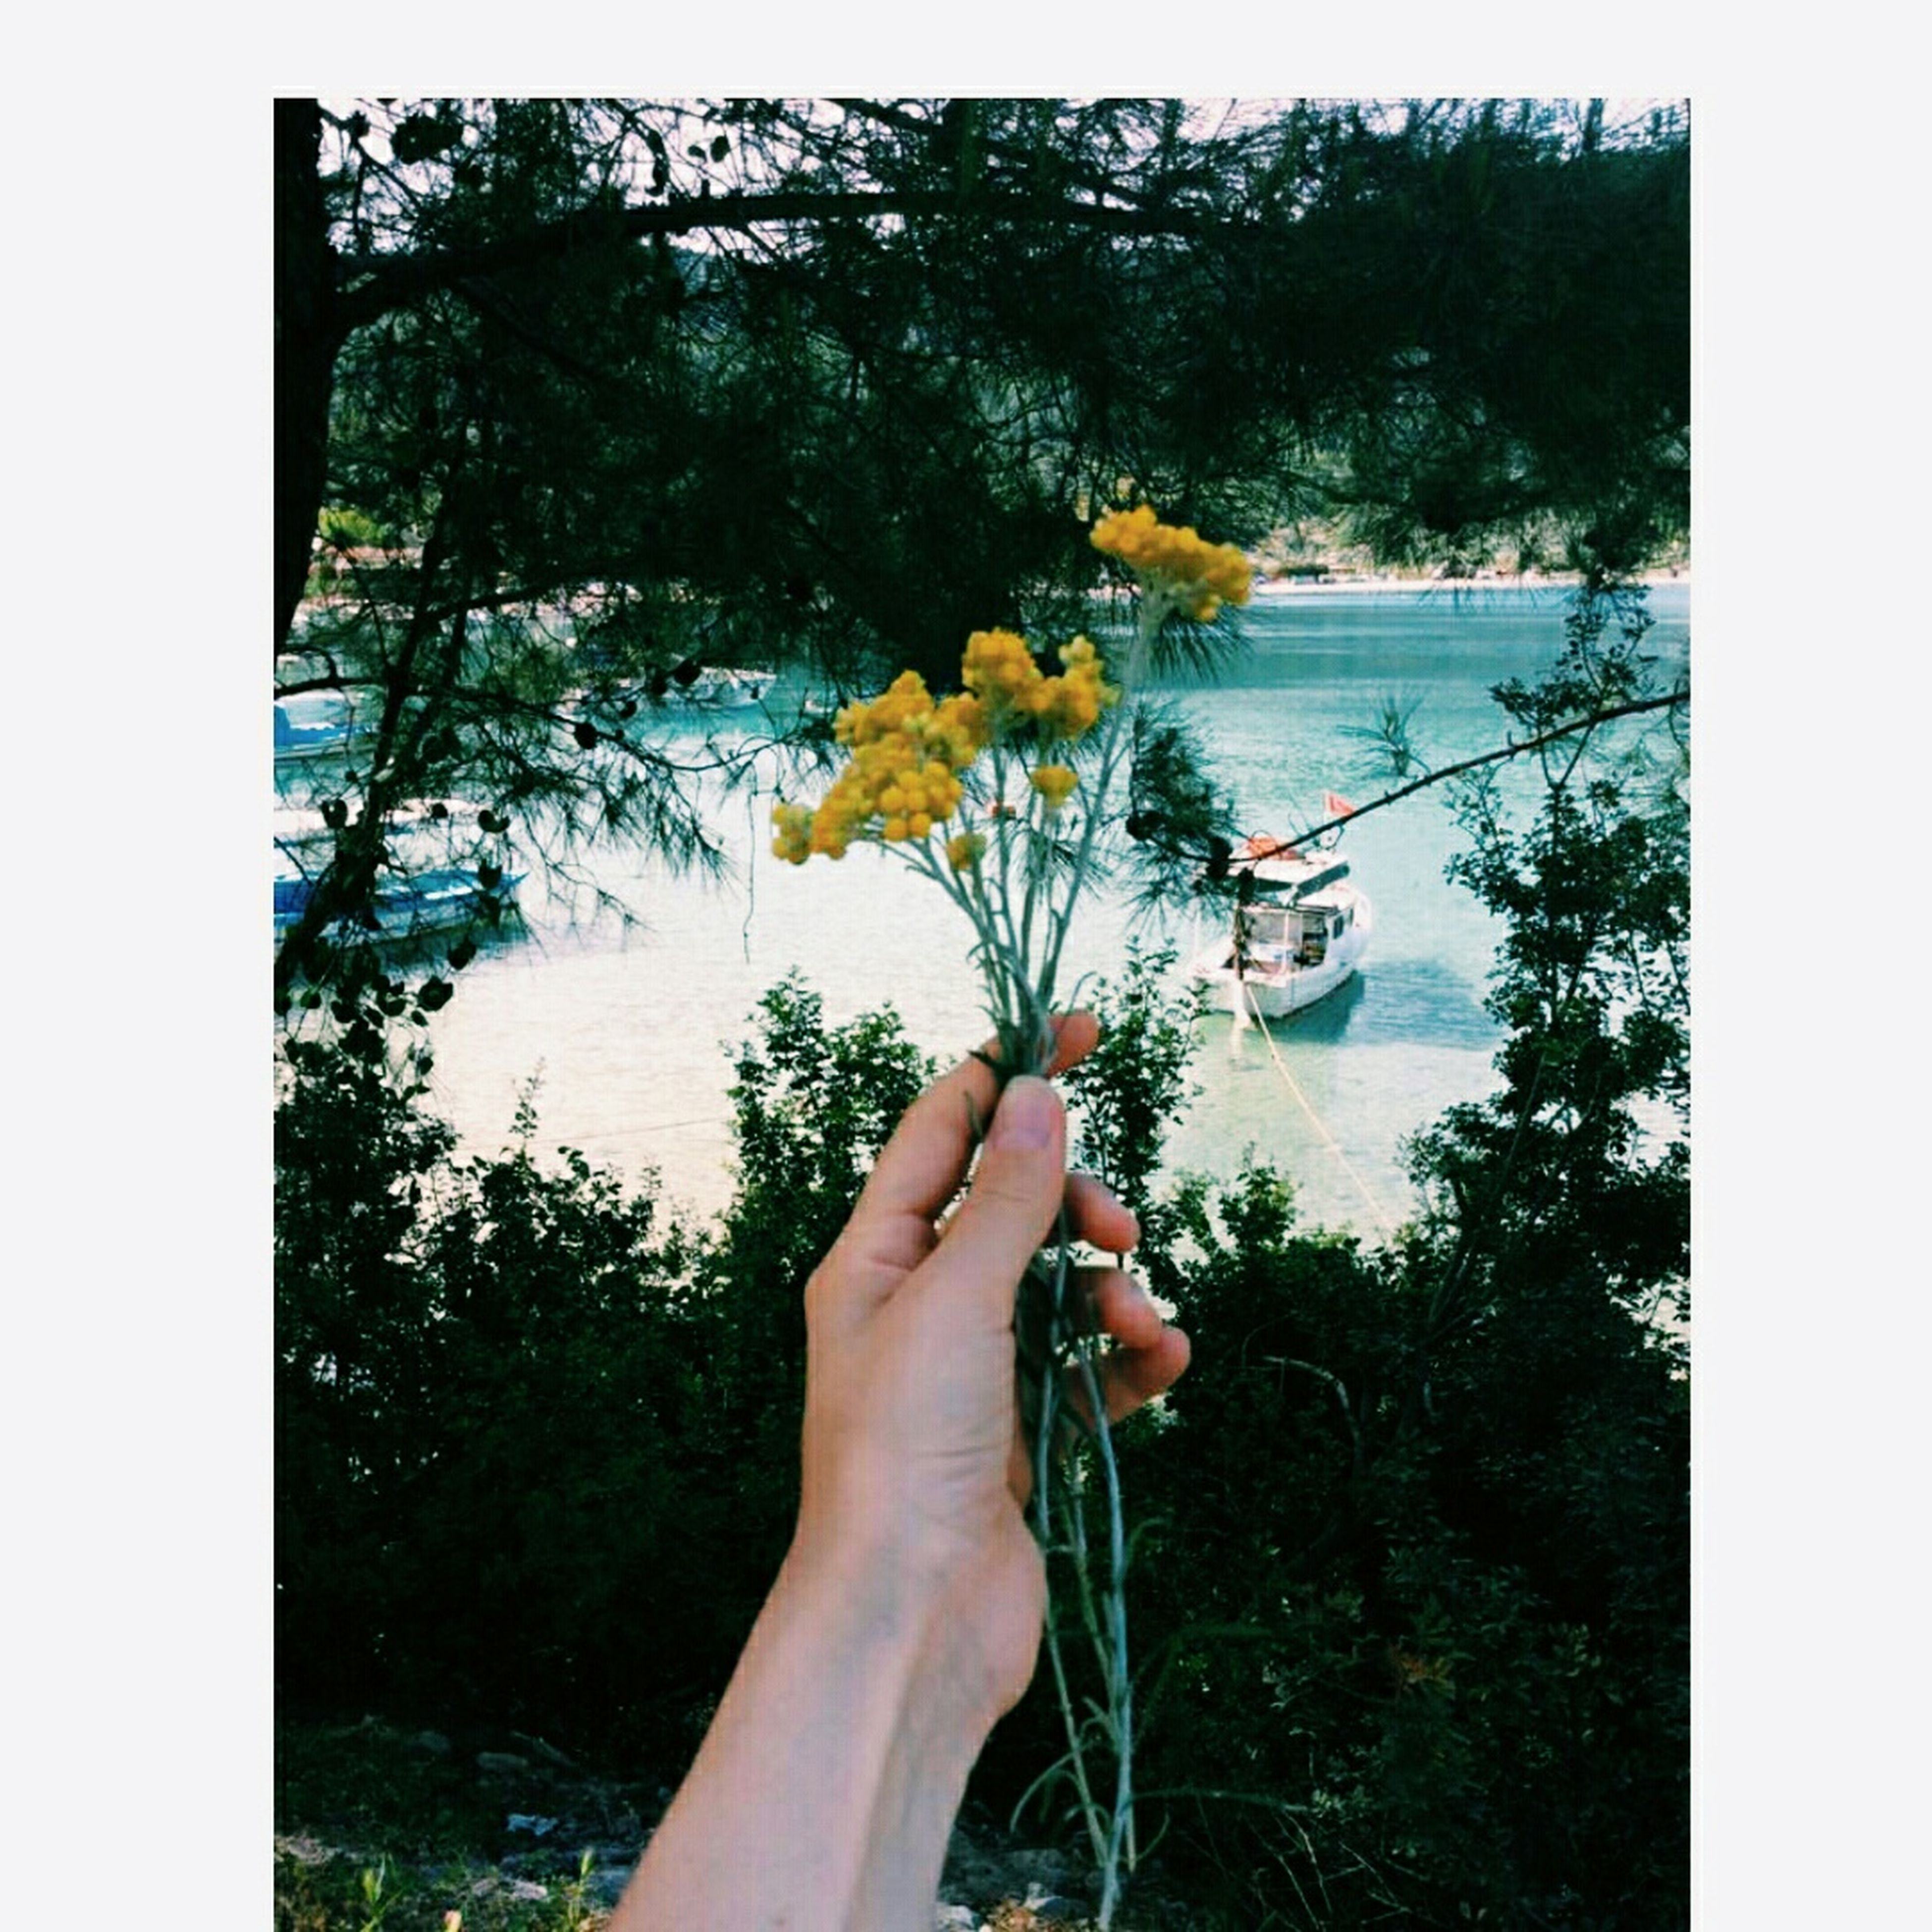 person, transfer print, part of, personal perspective, holding, auto post production filter, cropped, lifestyles, tree, water, leisure activity, unrecognizable person, human finger, lake, nature, men